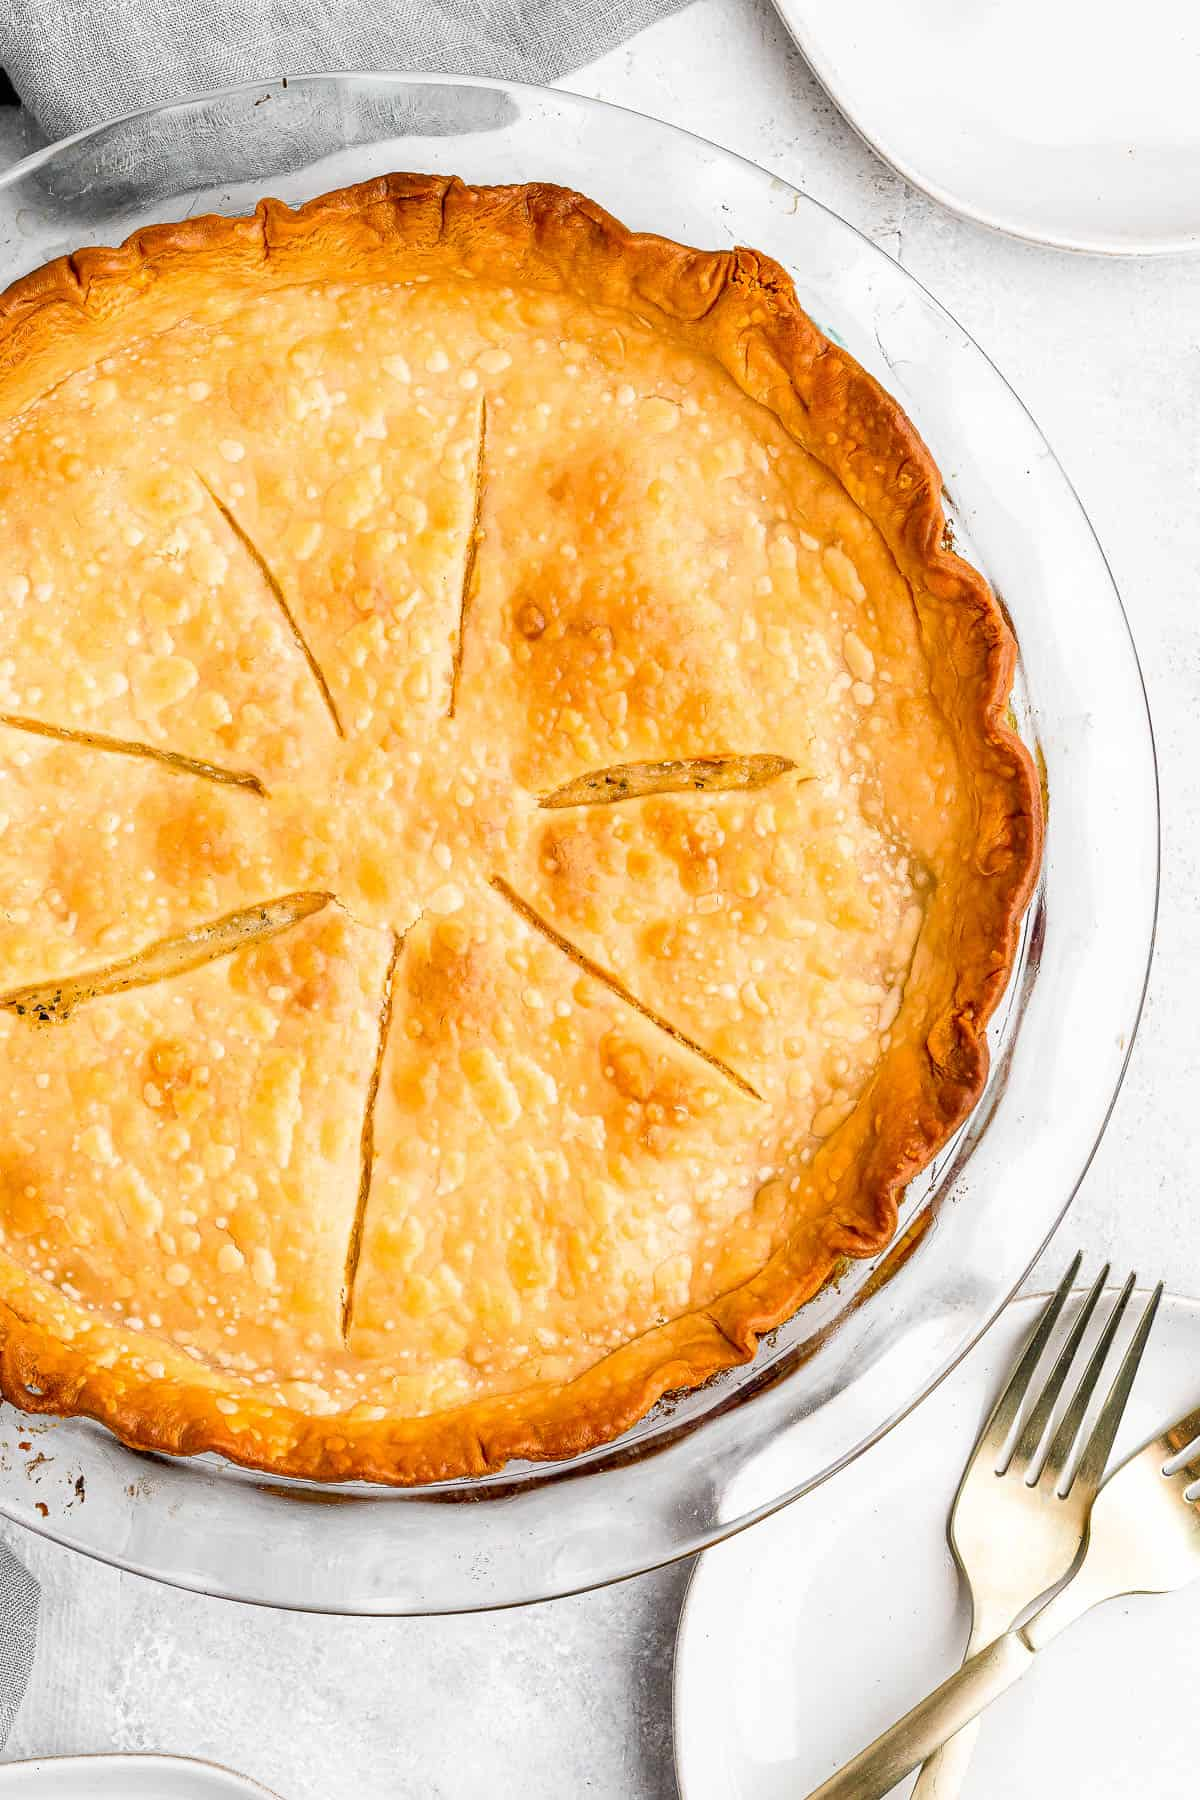 Baked chicken pot pie with slits cut into the top crust for venting.